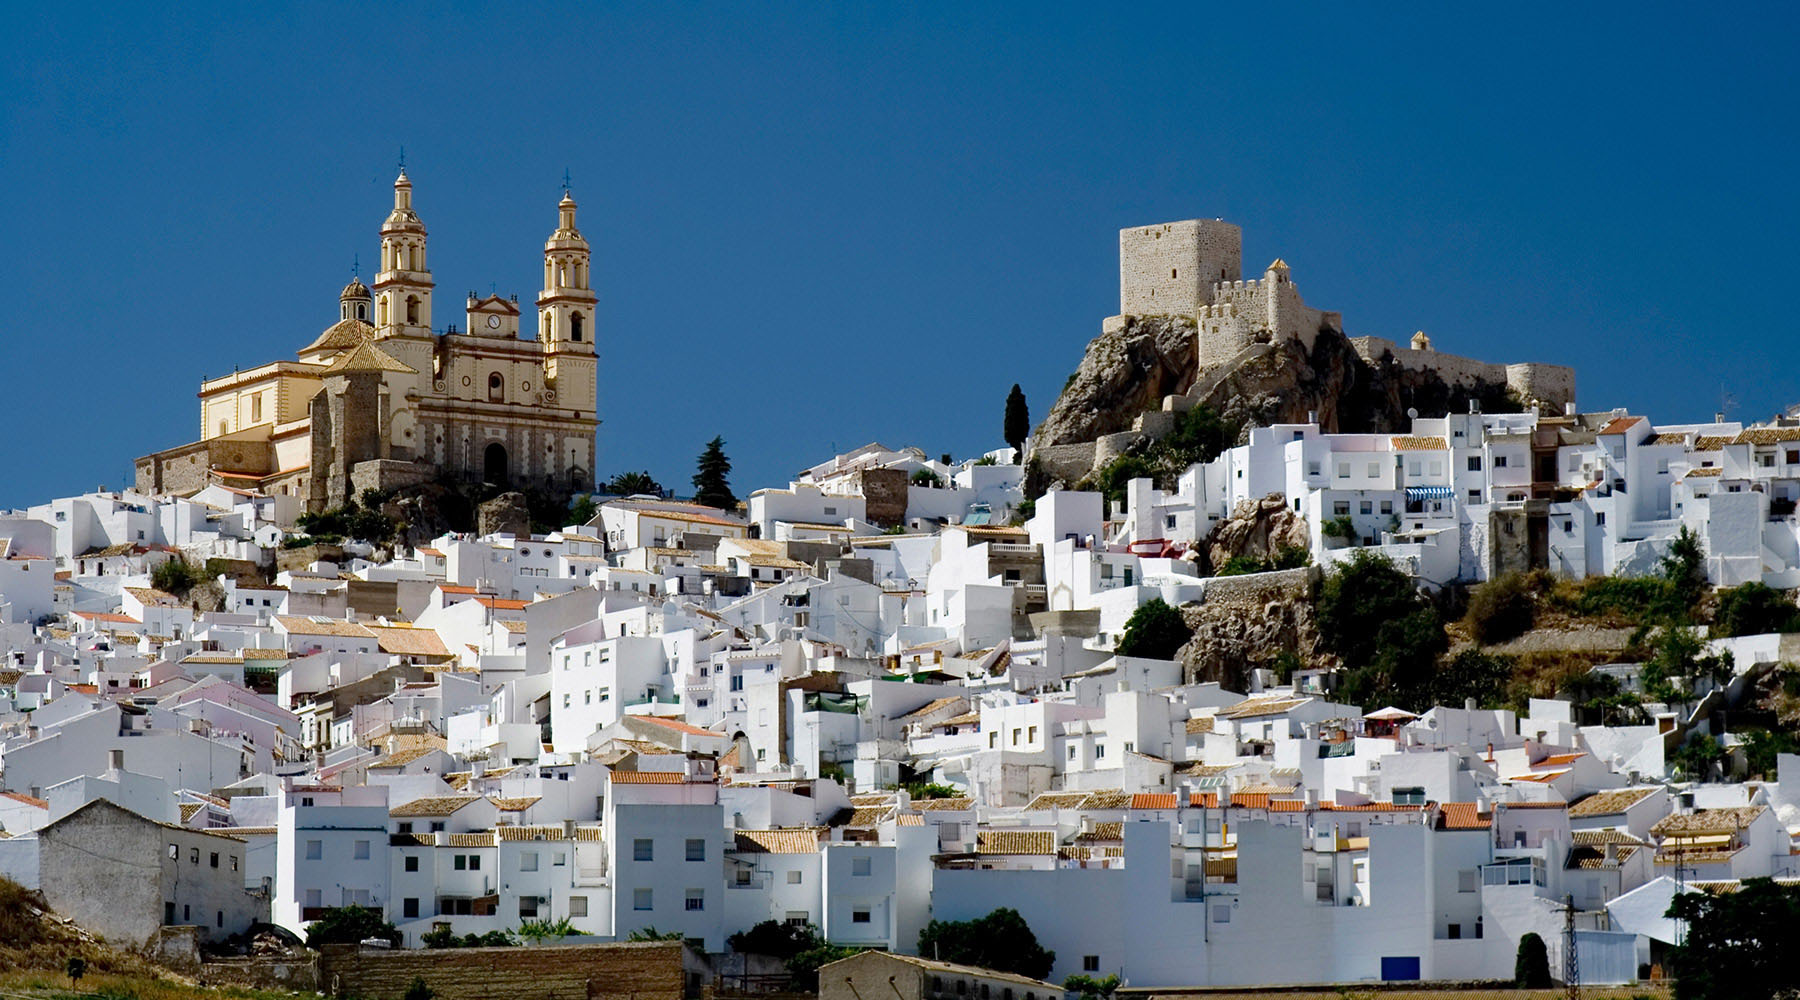 Ten Days of AzAmazing from Alcazar to Gaudi, Part One: It's All About The Destination